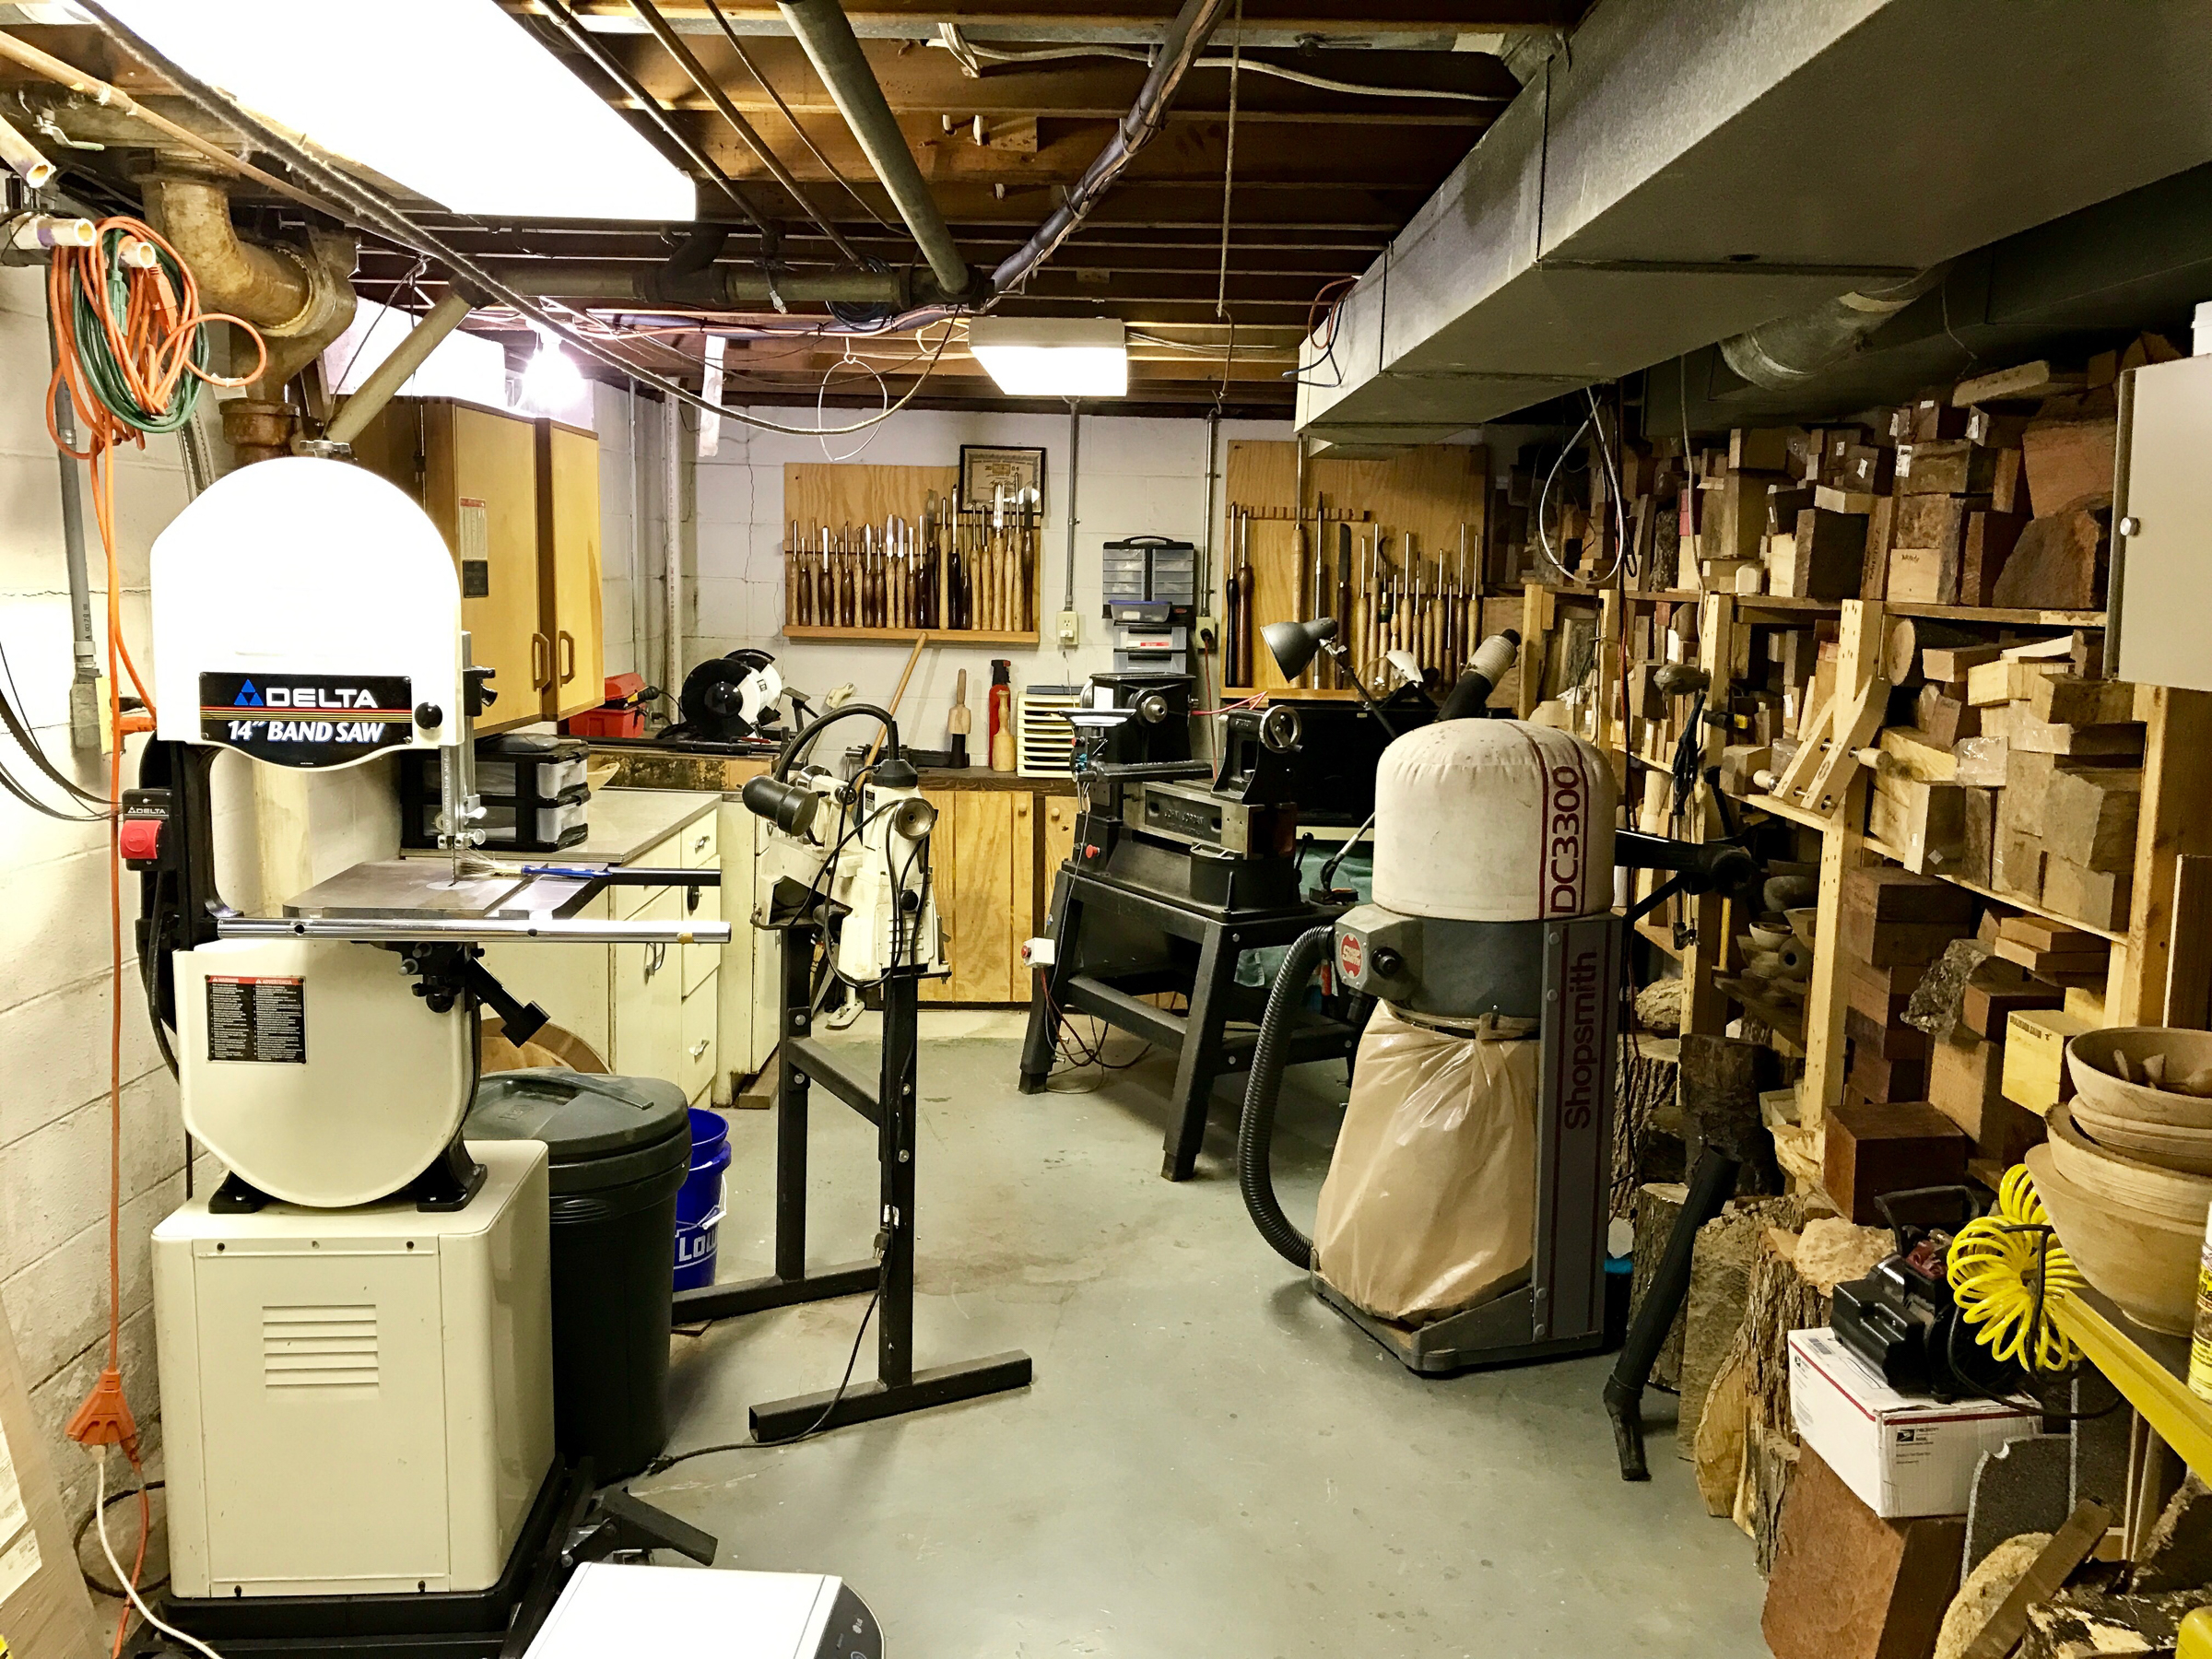 The primary work area